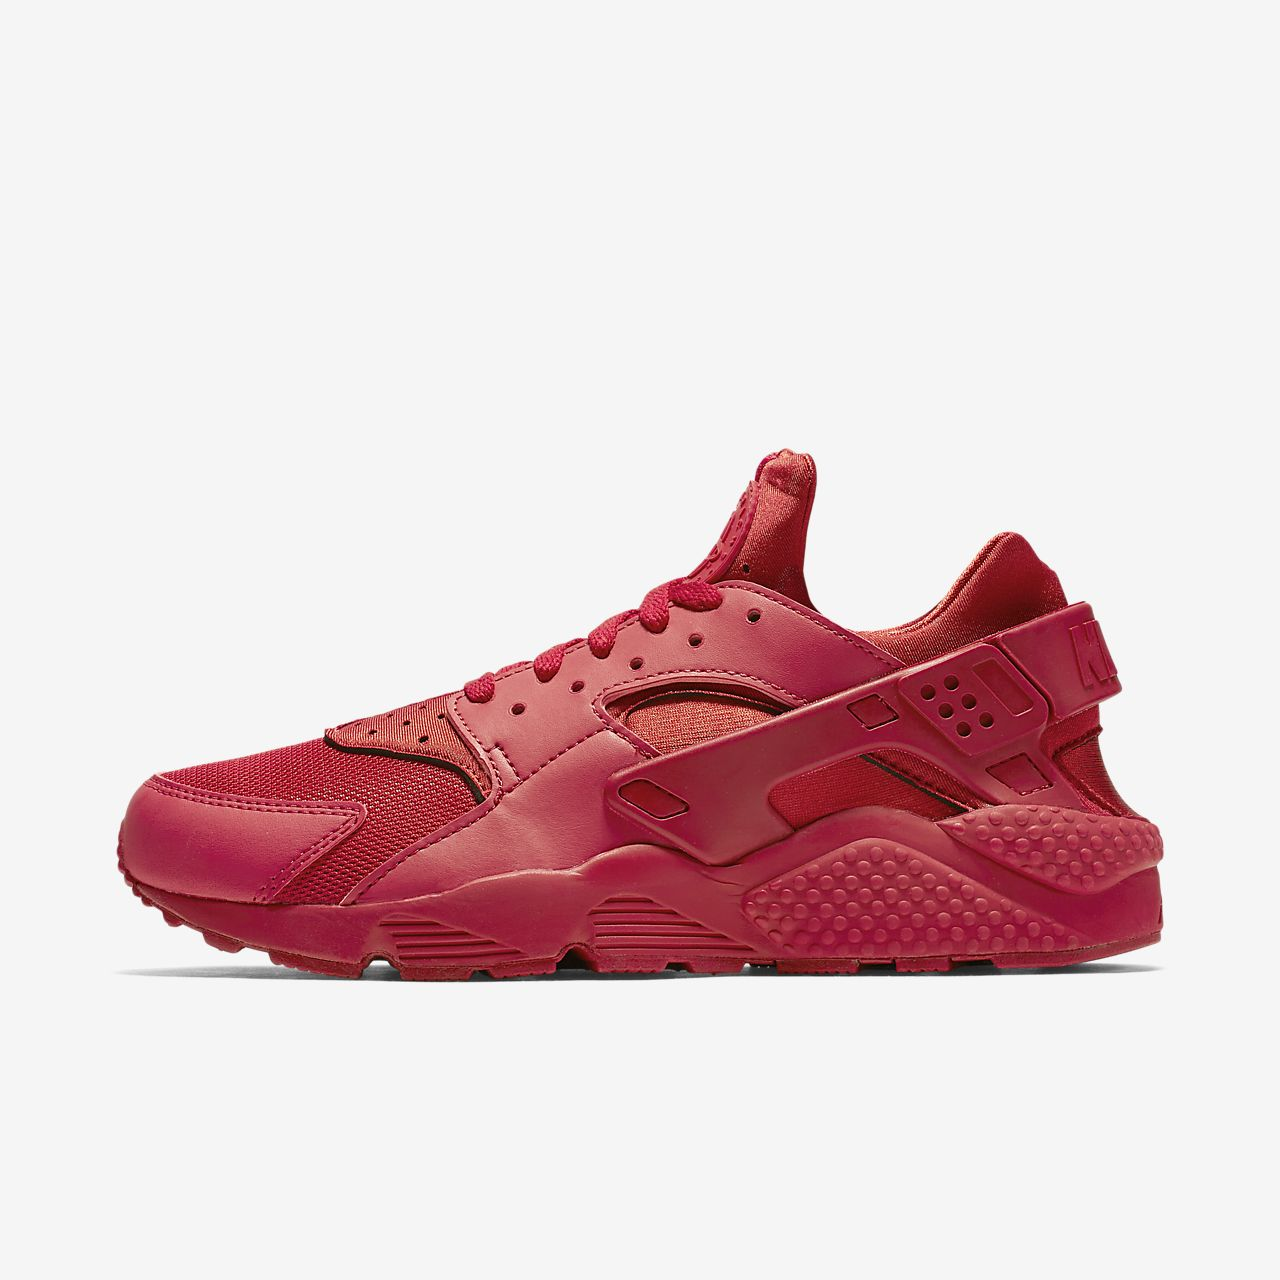 af72acef80c Nike Air Huarache Men s Shoe. Nike.com